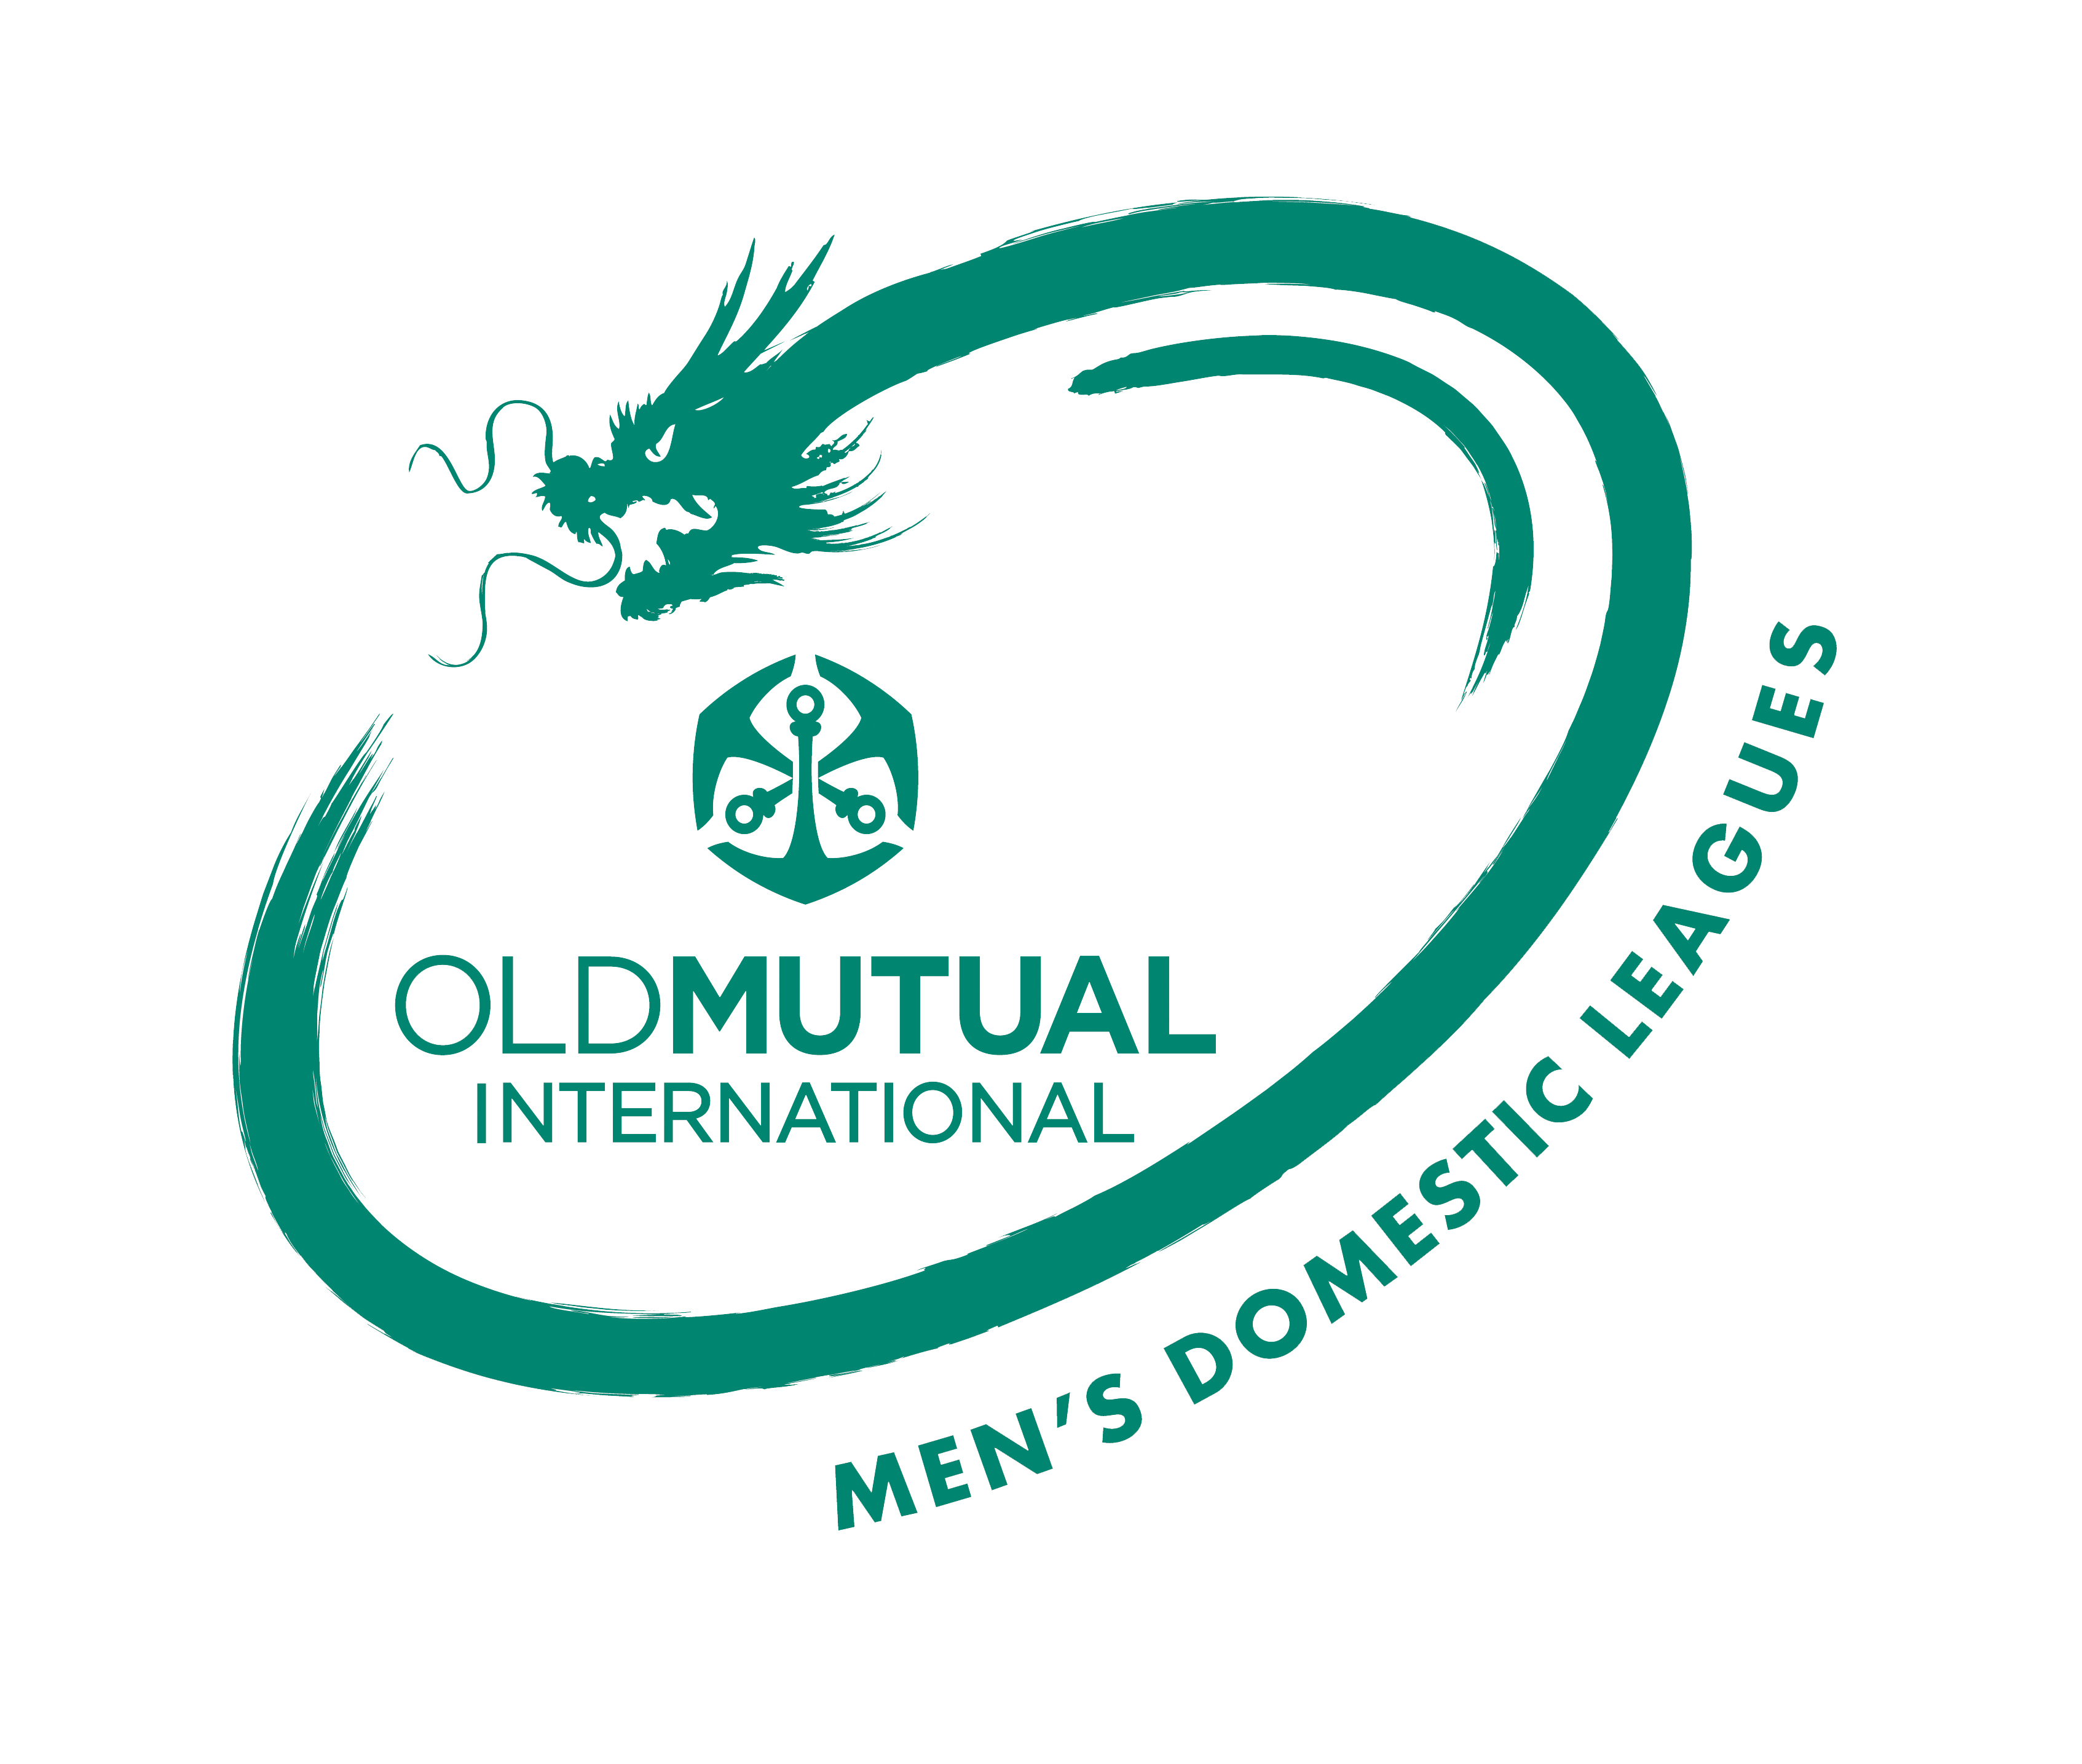 8 Omi Mens Domestic Leagues Website Wider White Darker Green